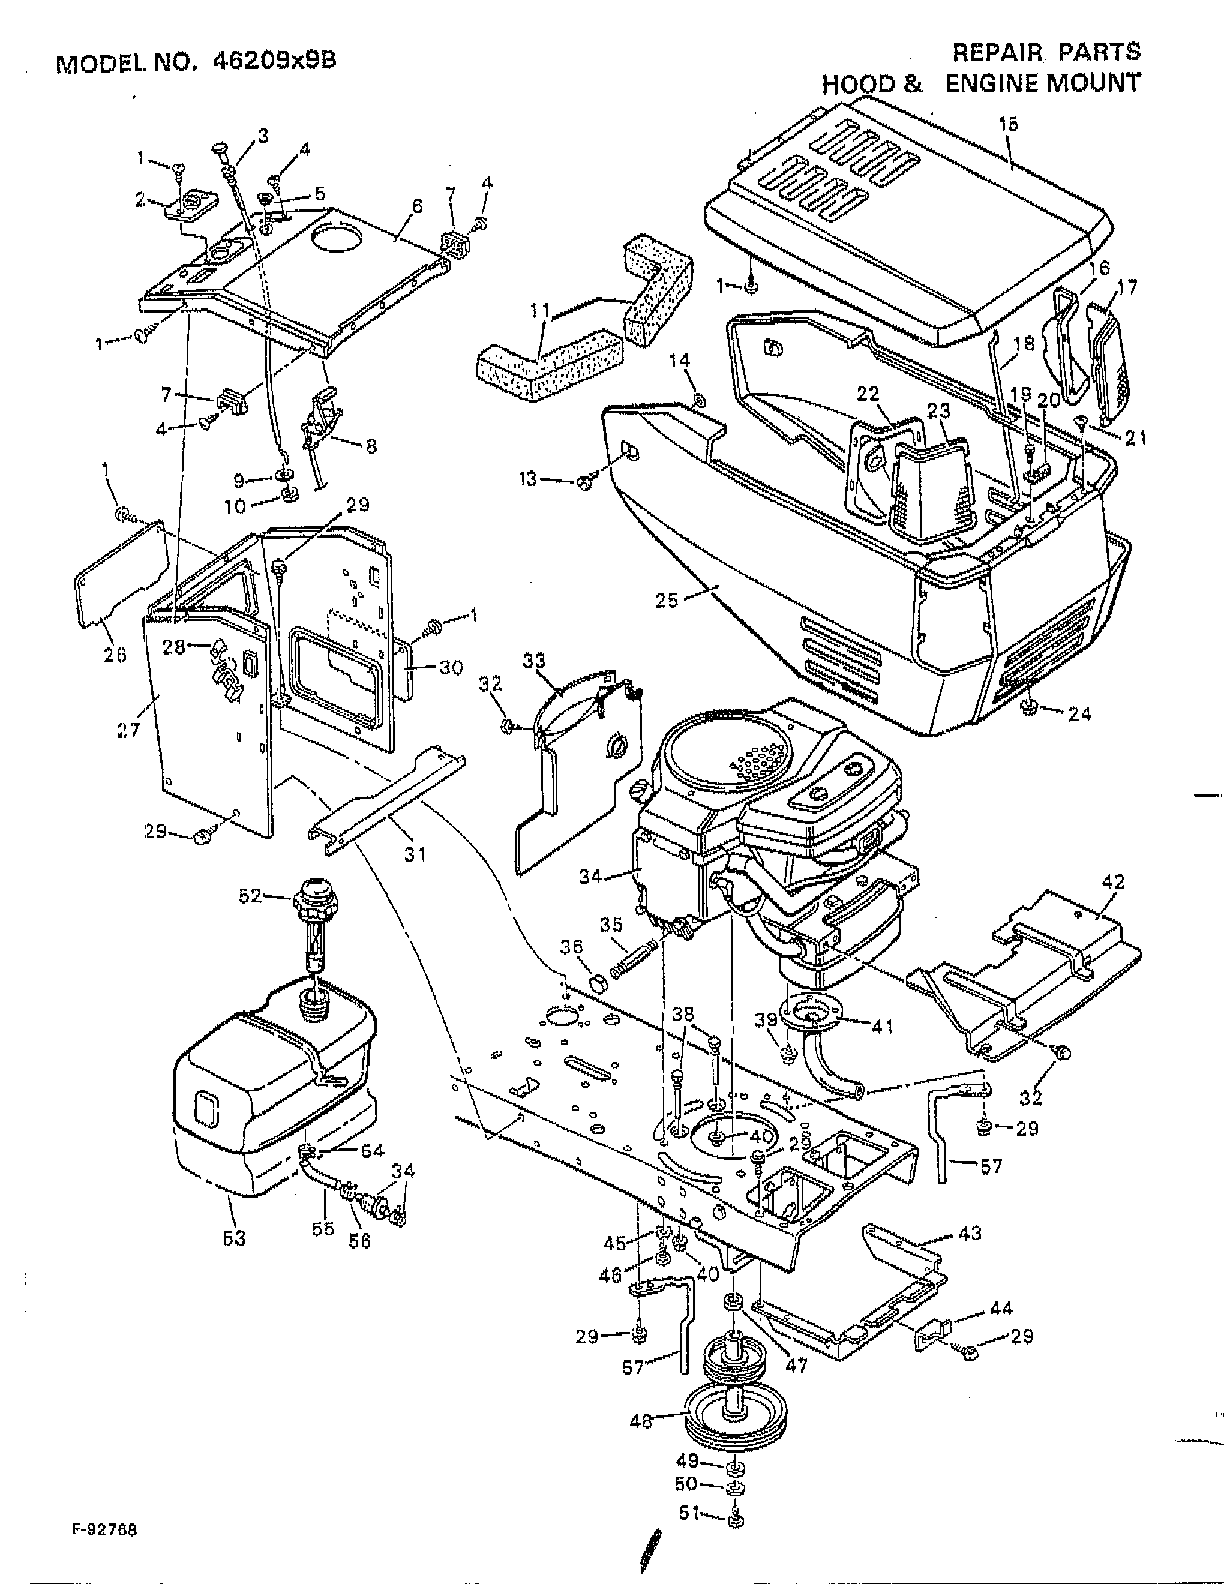 Murray Ignition Switch Diagram Tecumseh Ignition Diagram